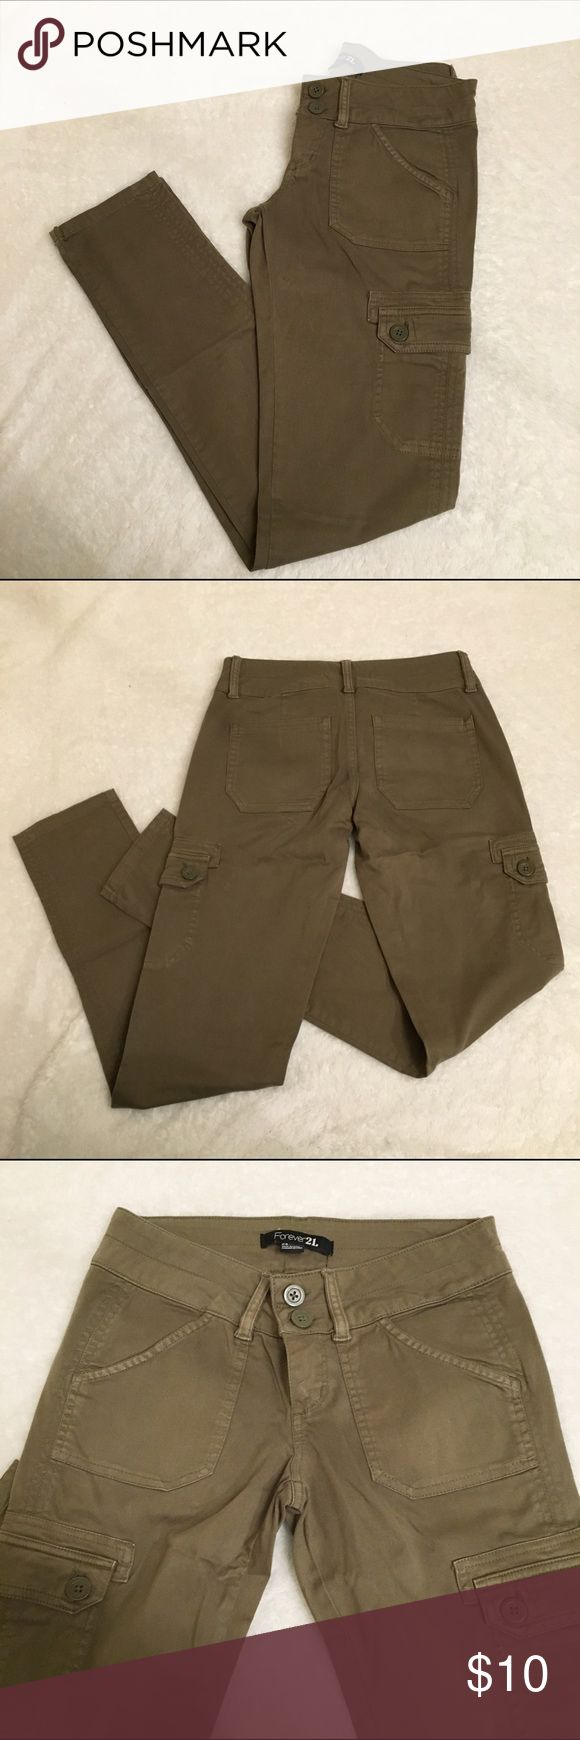 "Forever 21 Skinny Cargo Pants Khaki green colored skinny cargo pants. Size 24. Inseam 30"". Forever 21 Pants"